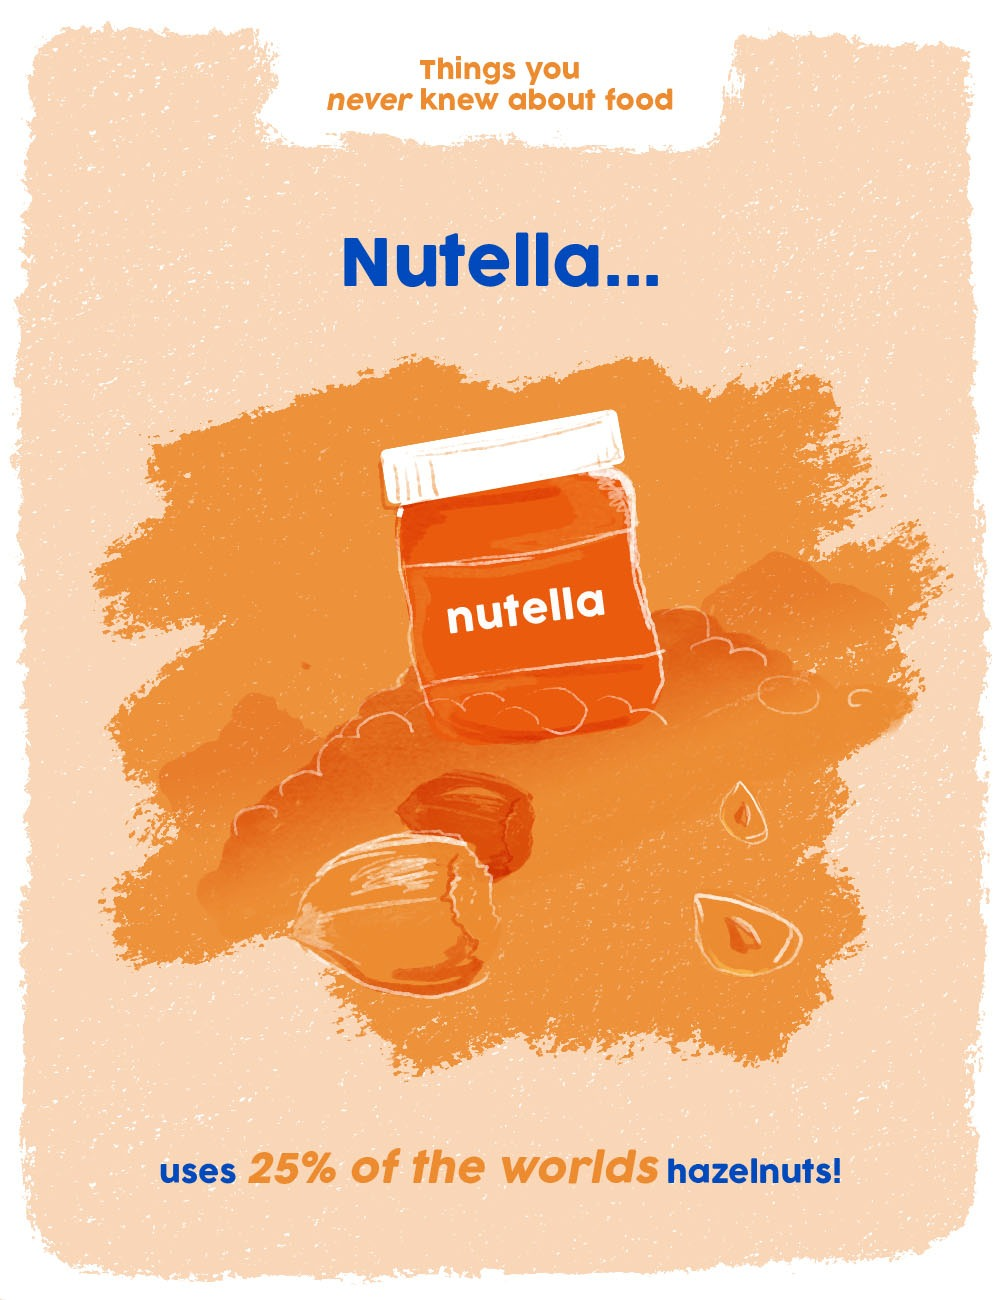 things you never knew about food graphics - nutella facts